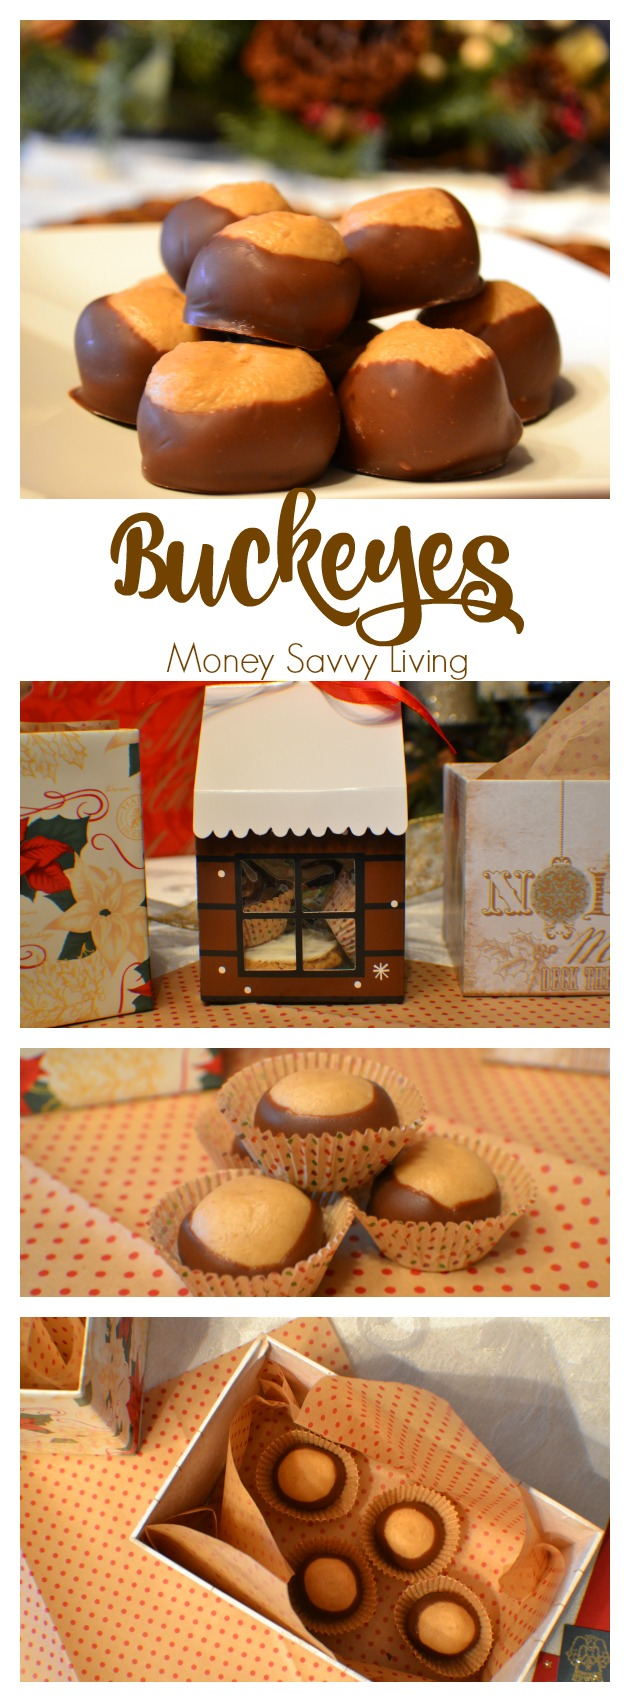 Buckeyes, or peanut butter and chocolate balls, taste just like a Reese's peanut butter cup! You remember the peanut butter squares from lunch when you were a kid? This recipe will definitely remind you of your childhood! #peanutbutter #chocolate #reeses #peanutbuttersquares #buckeyes #gourmet #candy #baking #chirstmas #yum